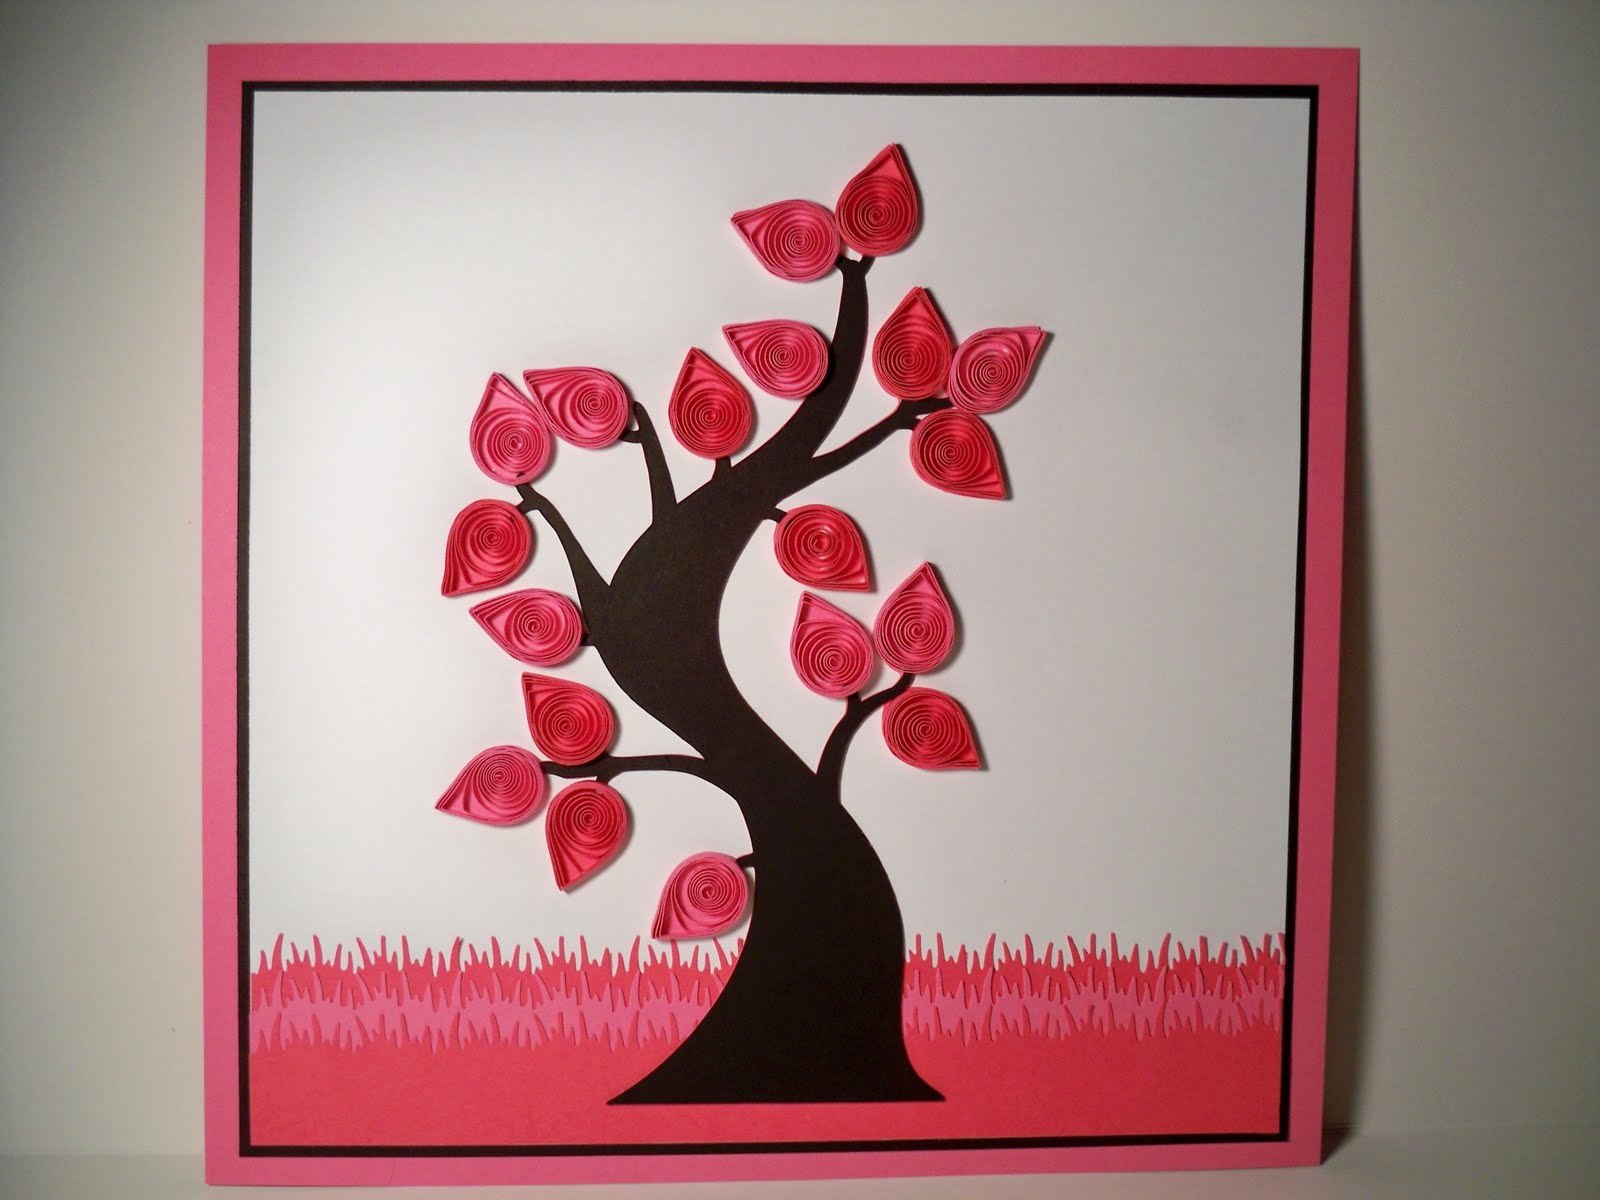 quilled art work   12x12 pink